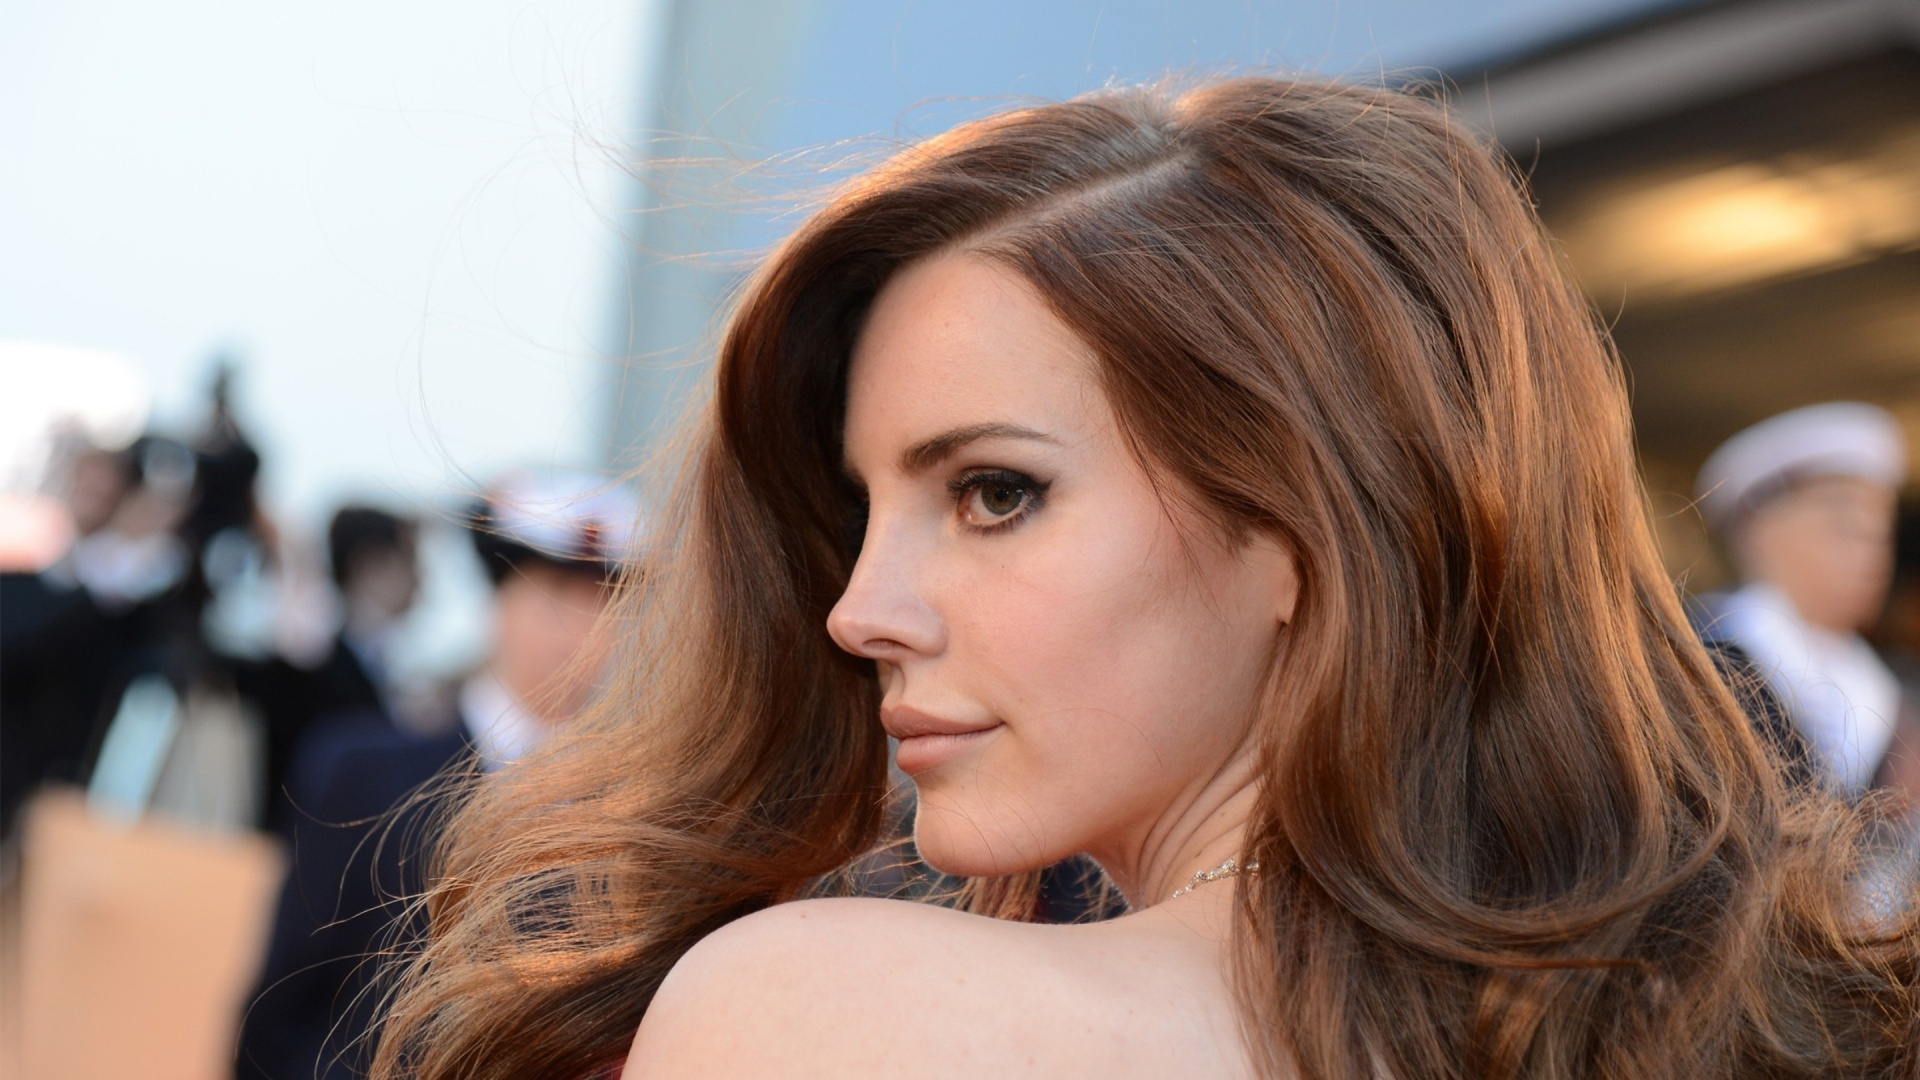 Celebrites Lana Del Rey naked (44 photos), Ass, Leaked, Selfie, braless 2006